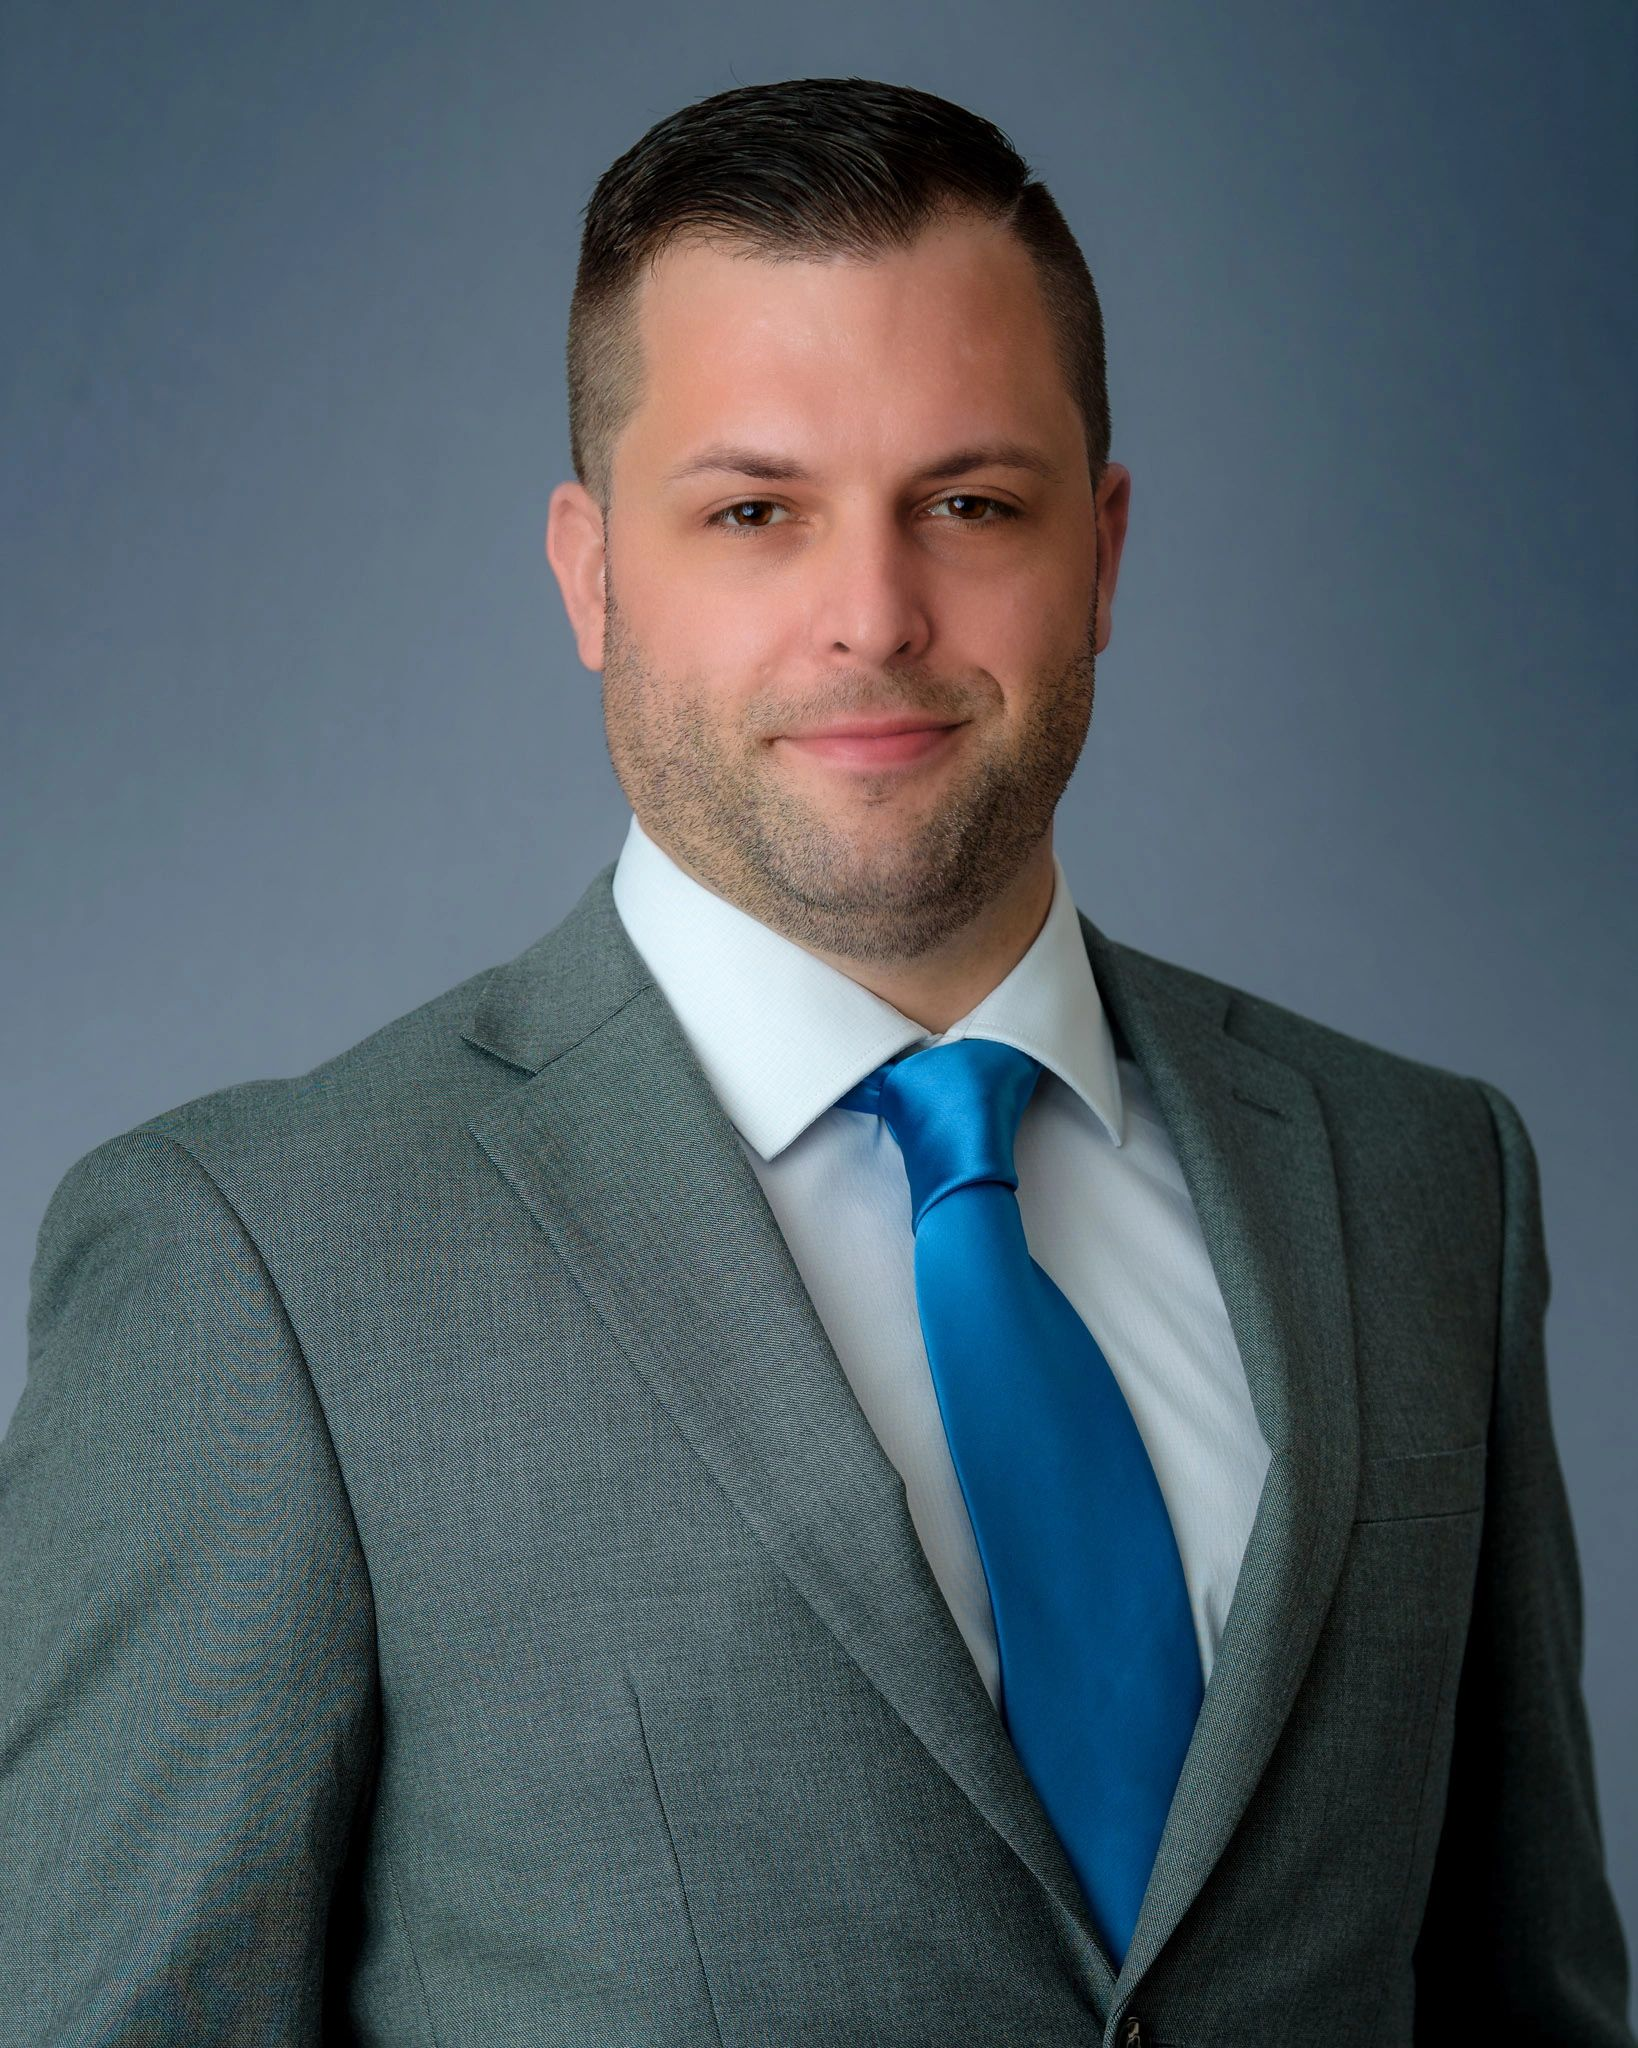 Alex Mindrup Attorney Law Firm, Personal Injury, Estate Planning, trial lawyer, litigation, marchman